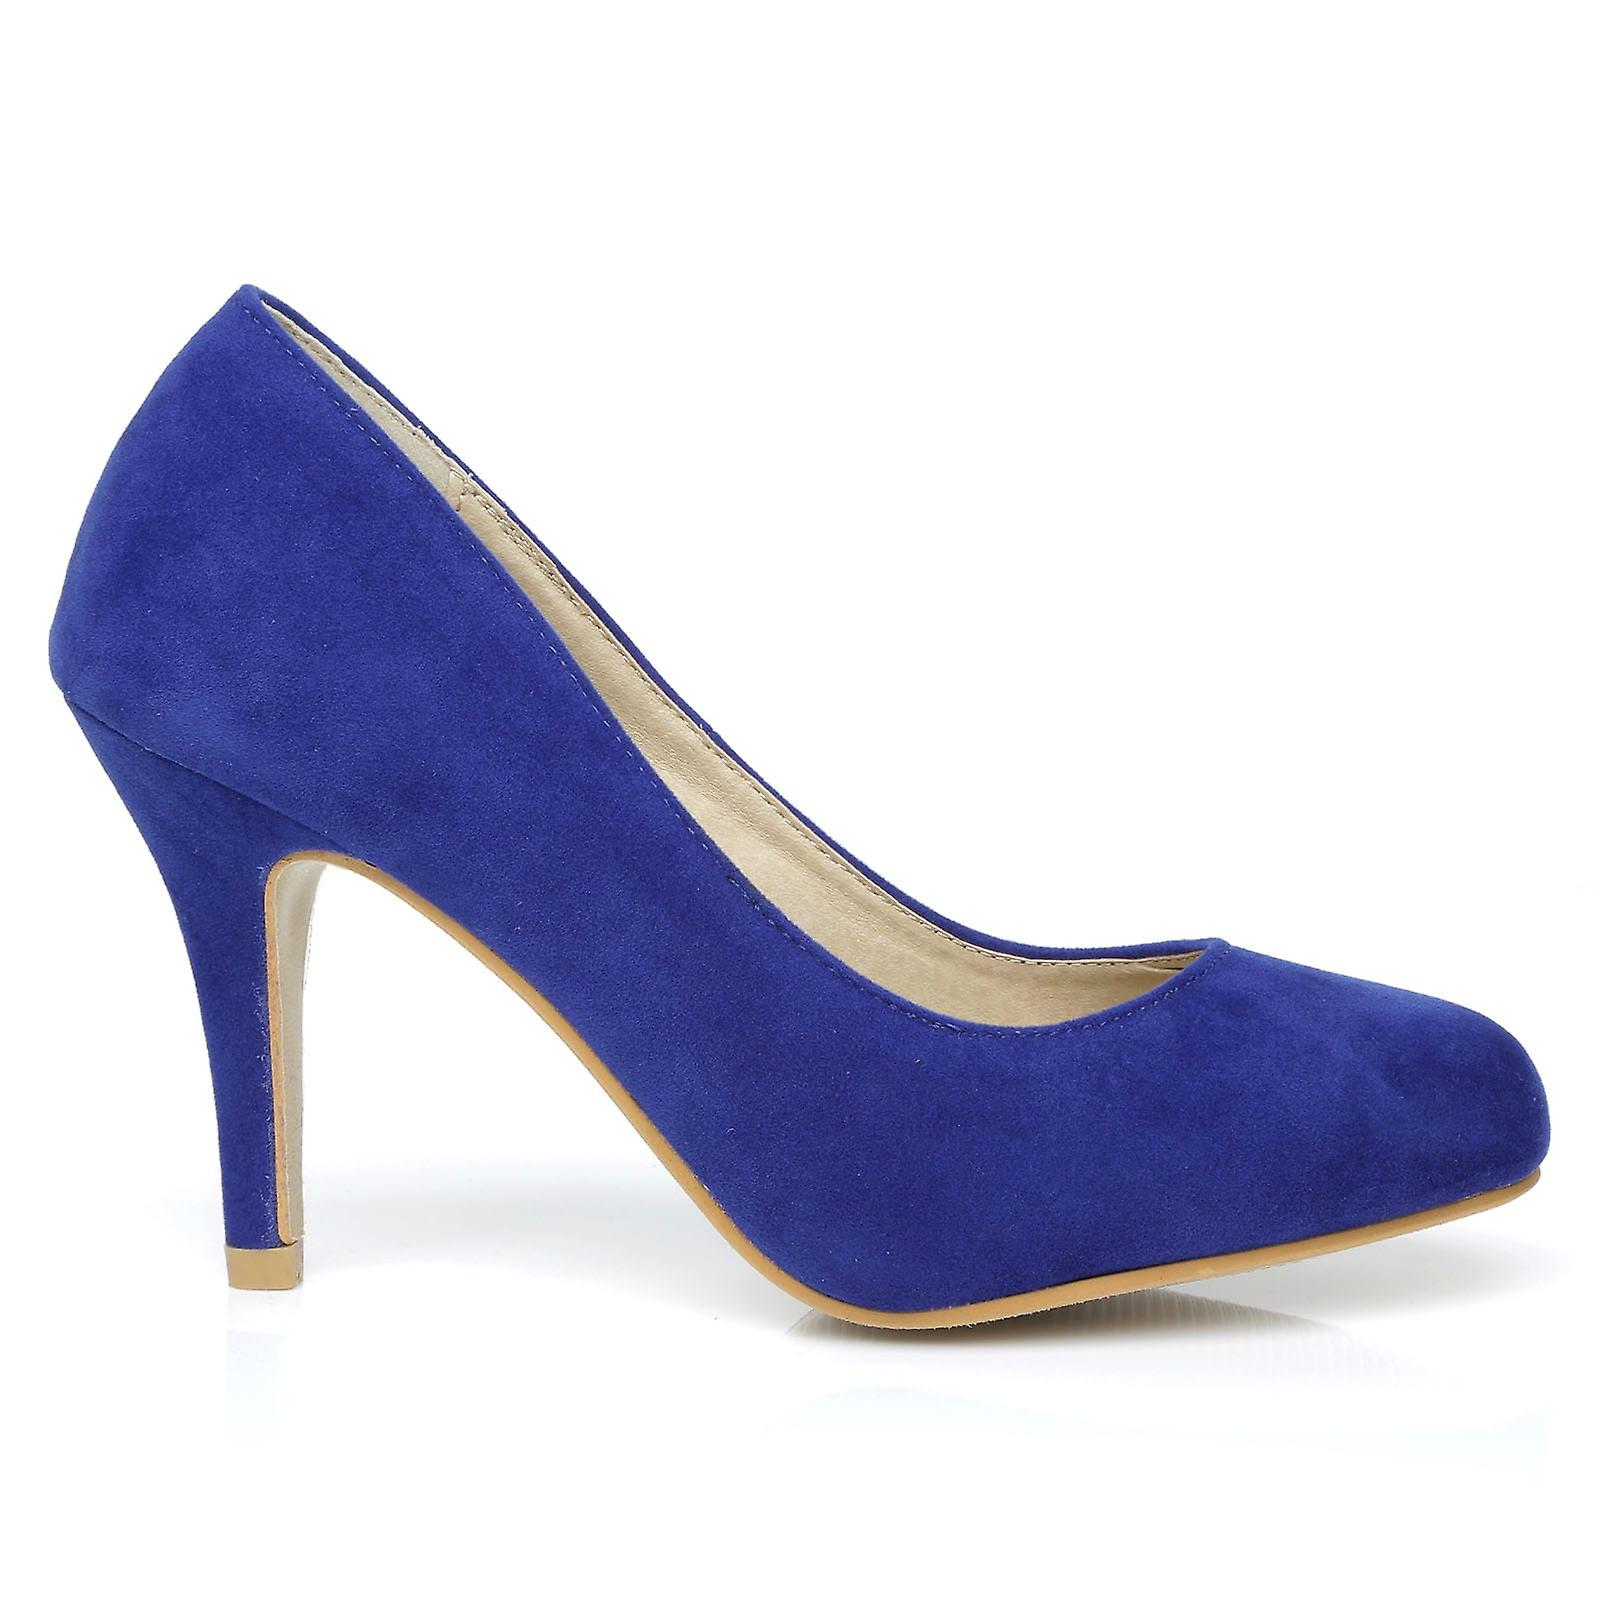 PEARL Electric High Blue Faux Suede Stiletto High Electric Heel Classic Court Shoes 74109b